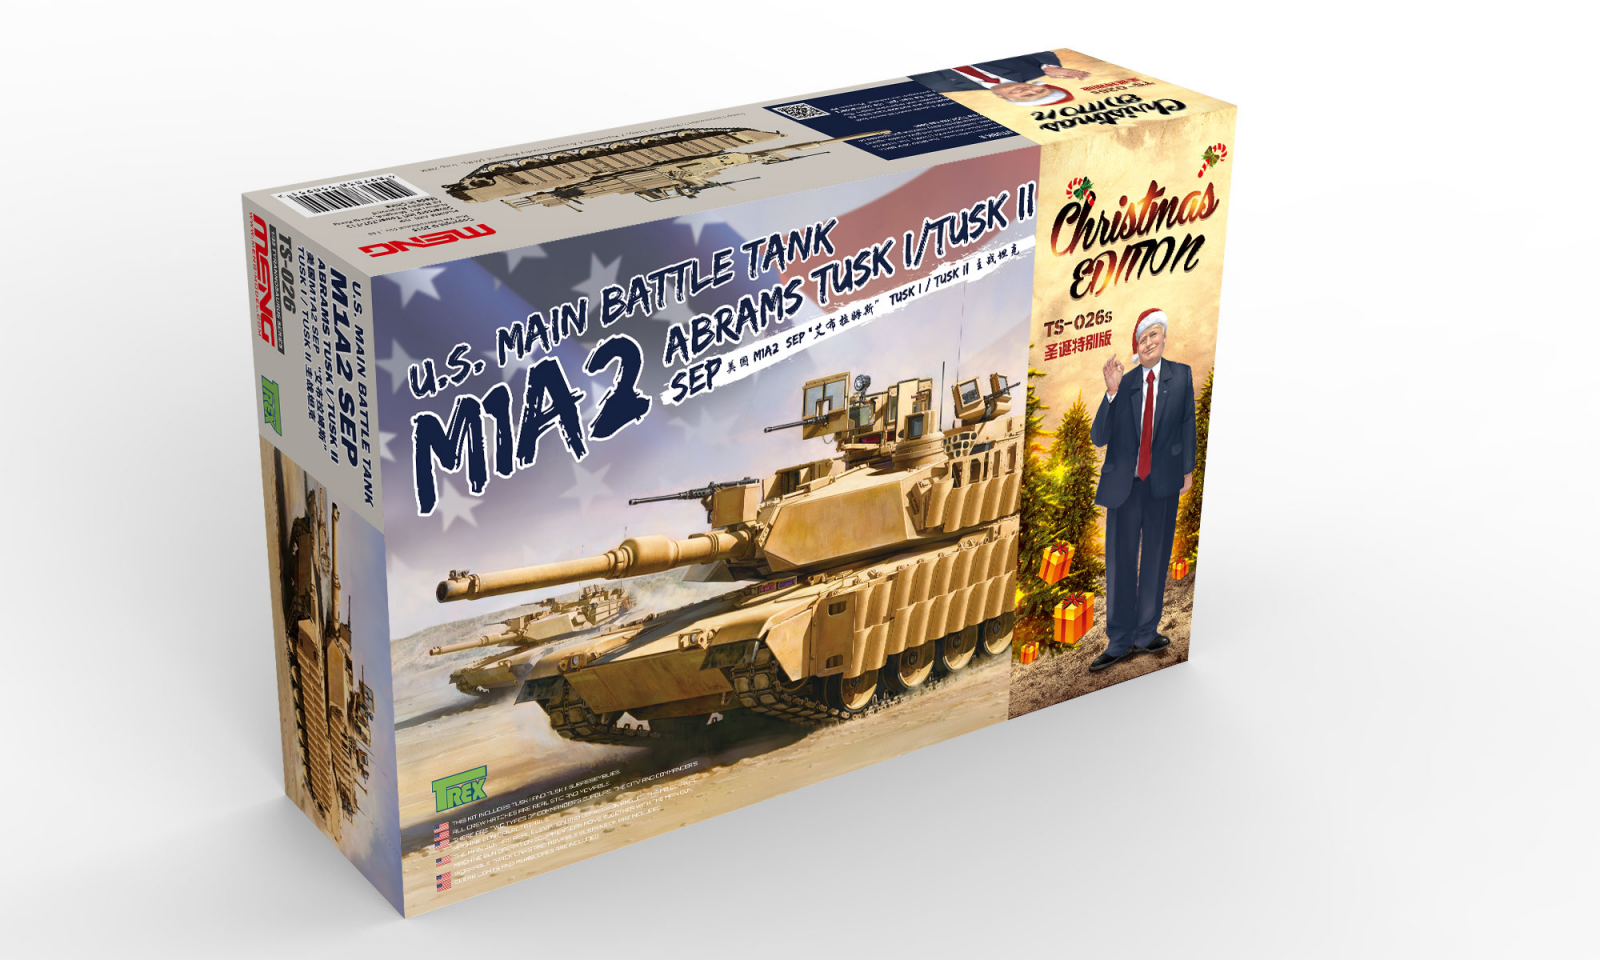 M1A2 Abrams SEP Tusk I/Tusk II - Limited Christmas Edition